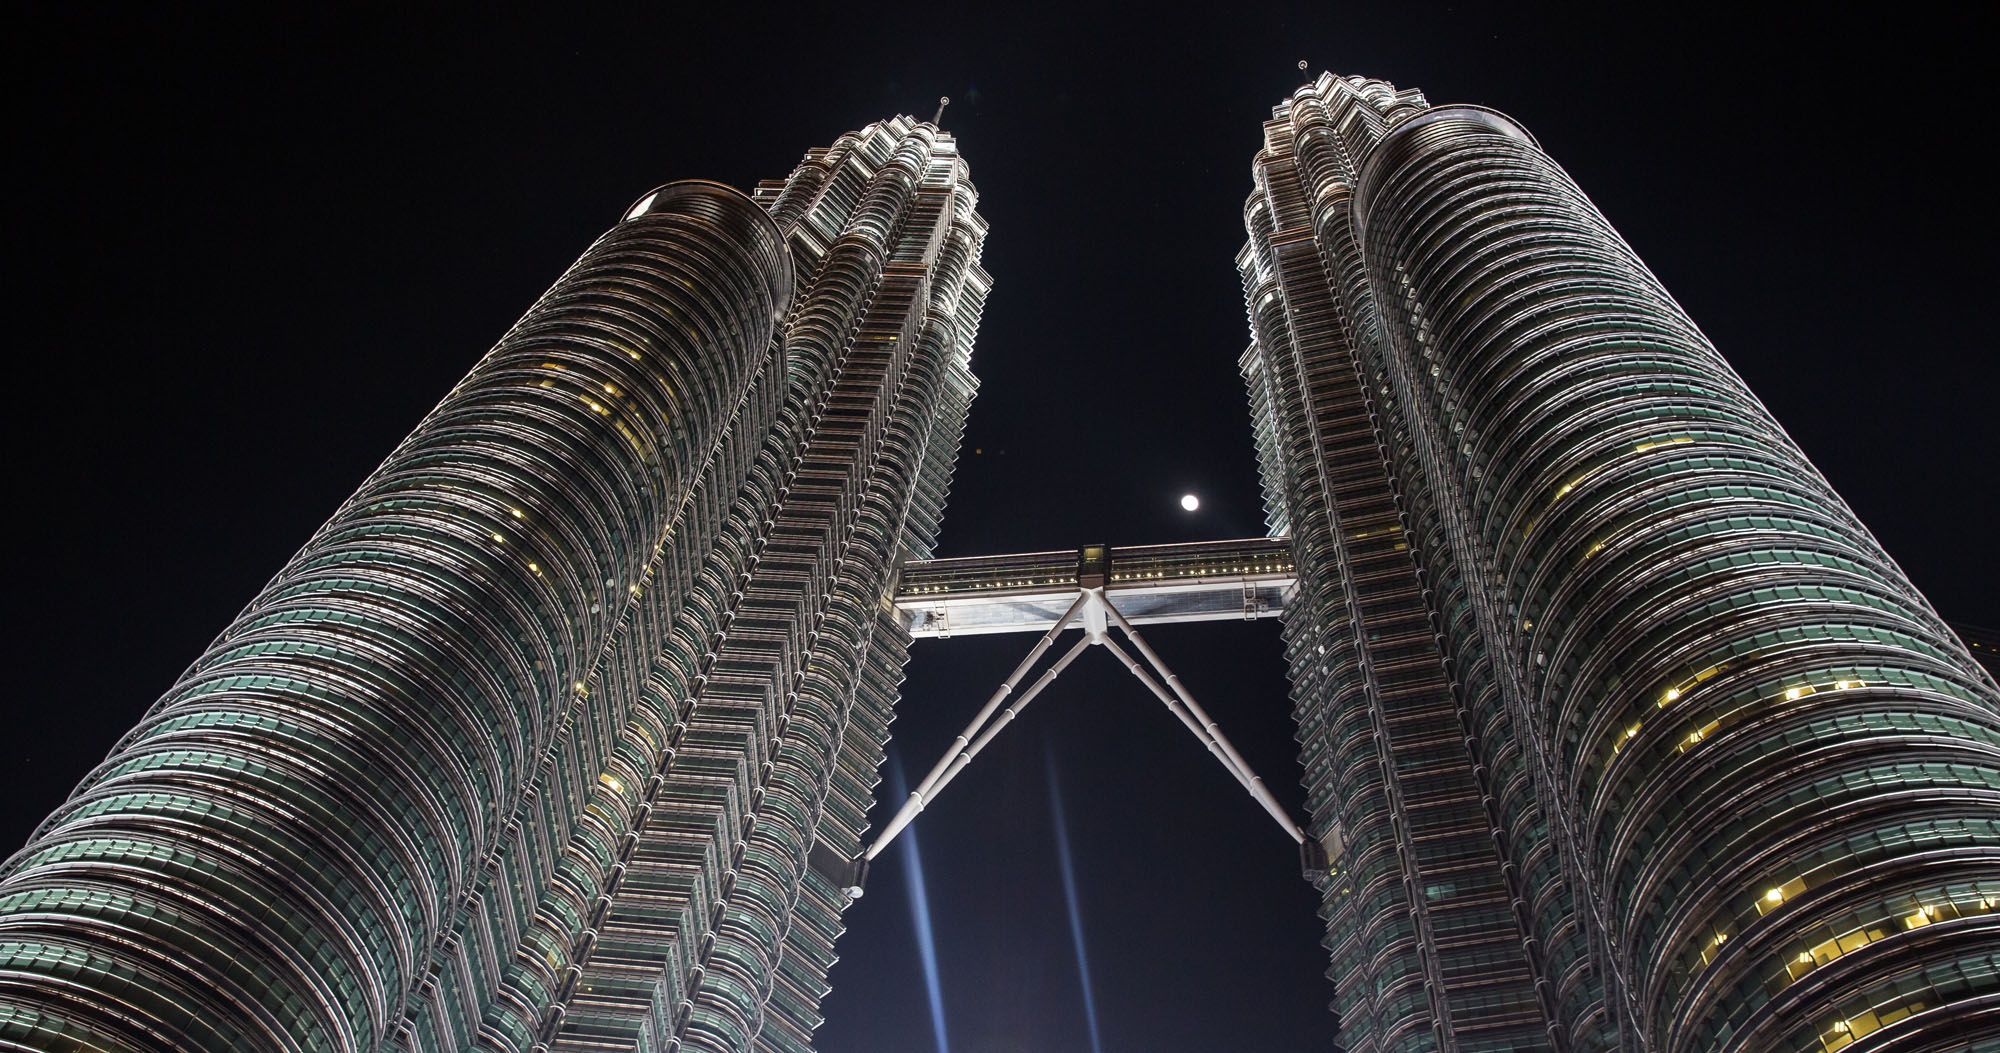 How to Visit Petronas Towers